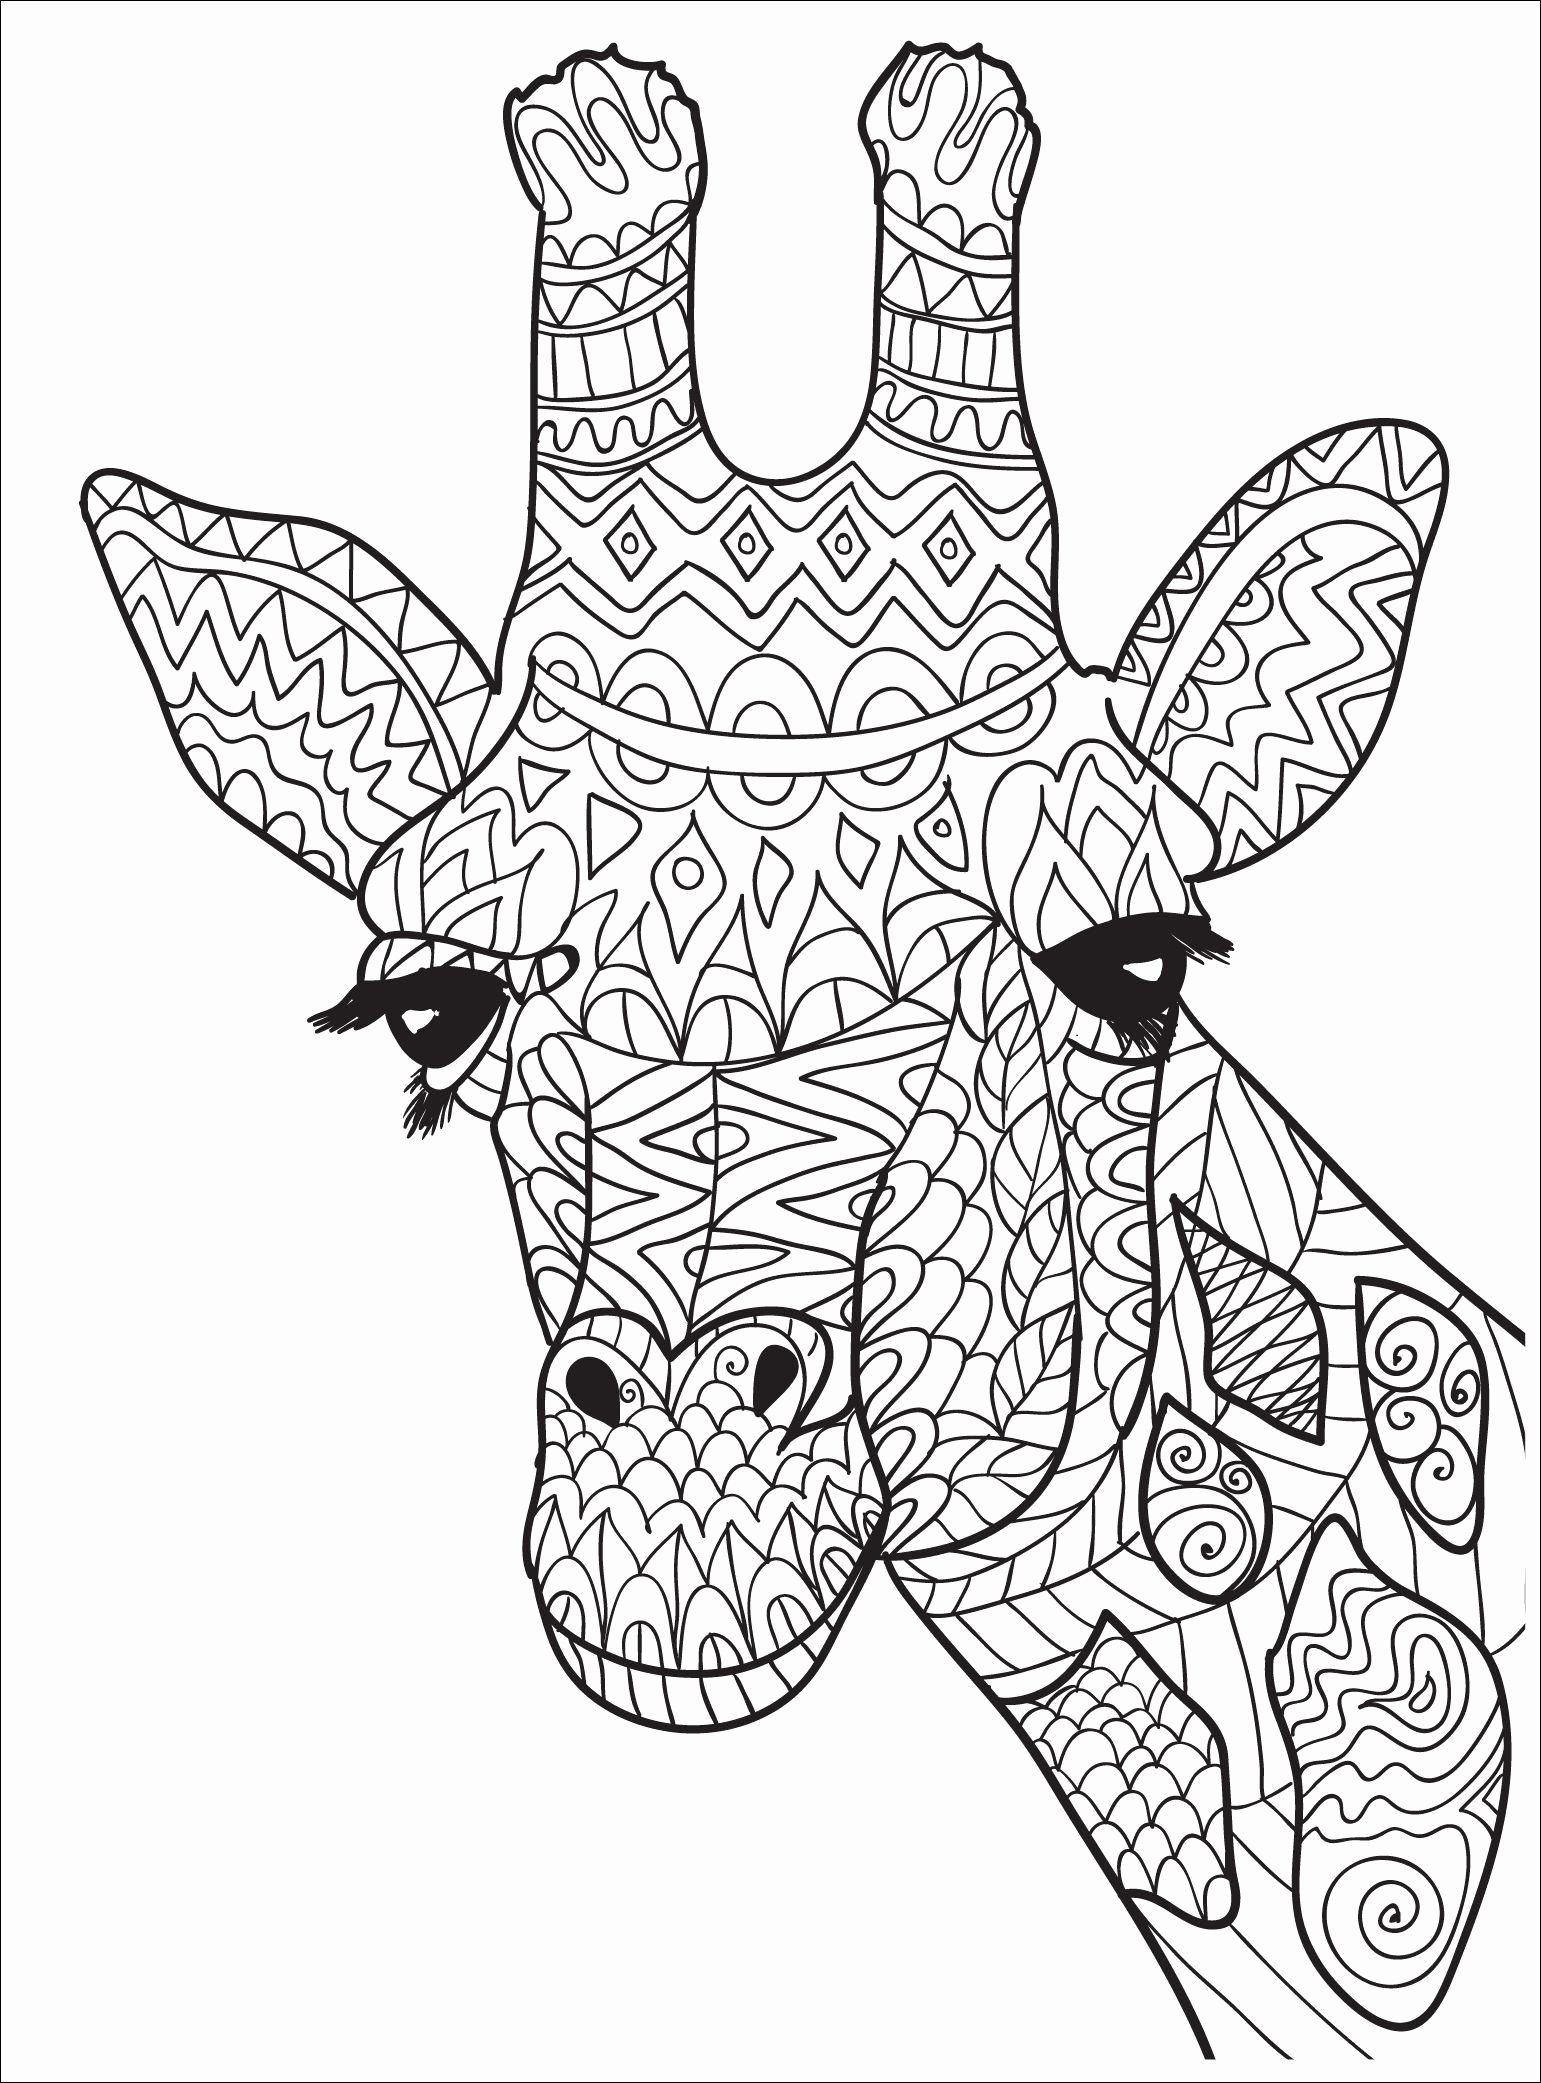 Advanced Coloring Pages Animals Unique 23 New Image Cute Animal Coloring Page For Adults Giraffe Coloring Pages Animal Coloring Pages People Coloring Pages